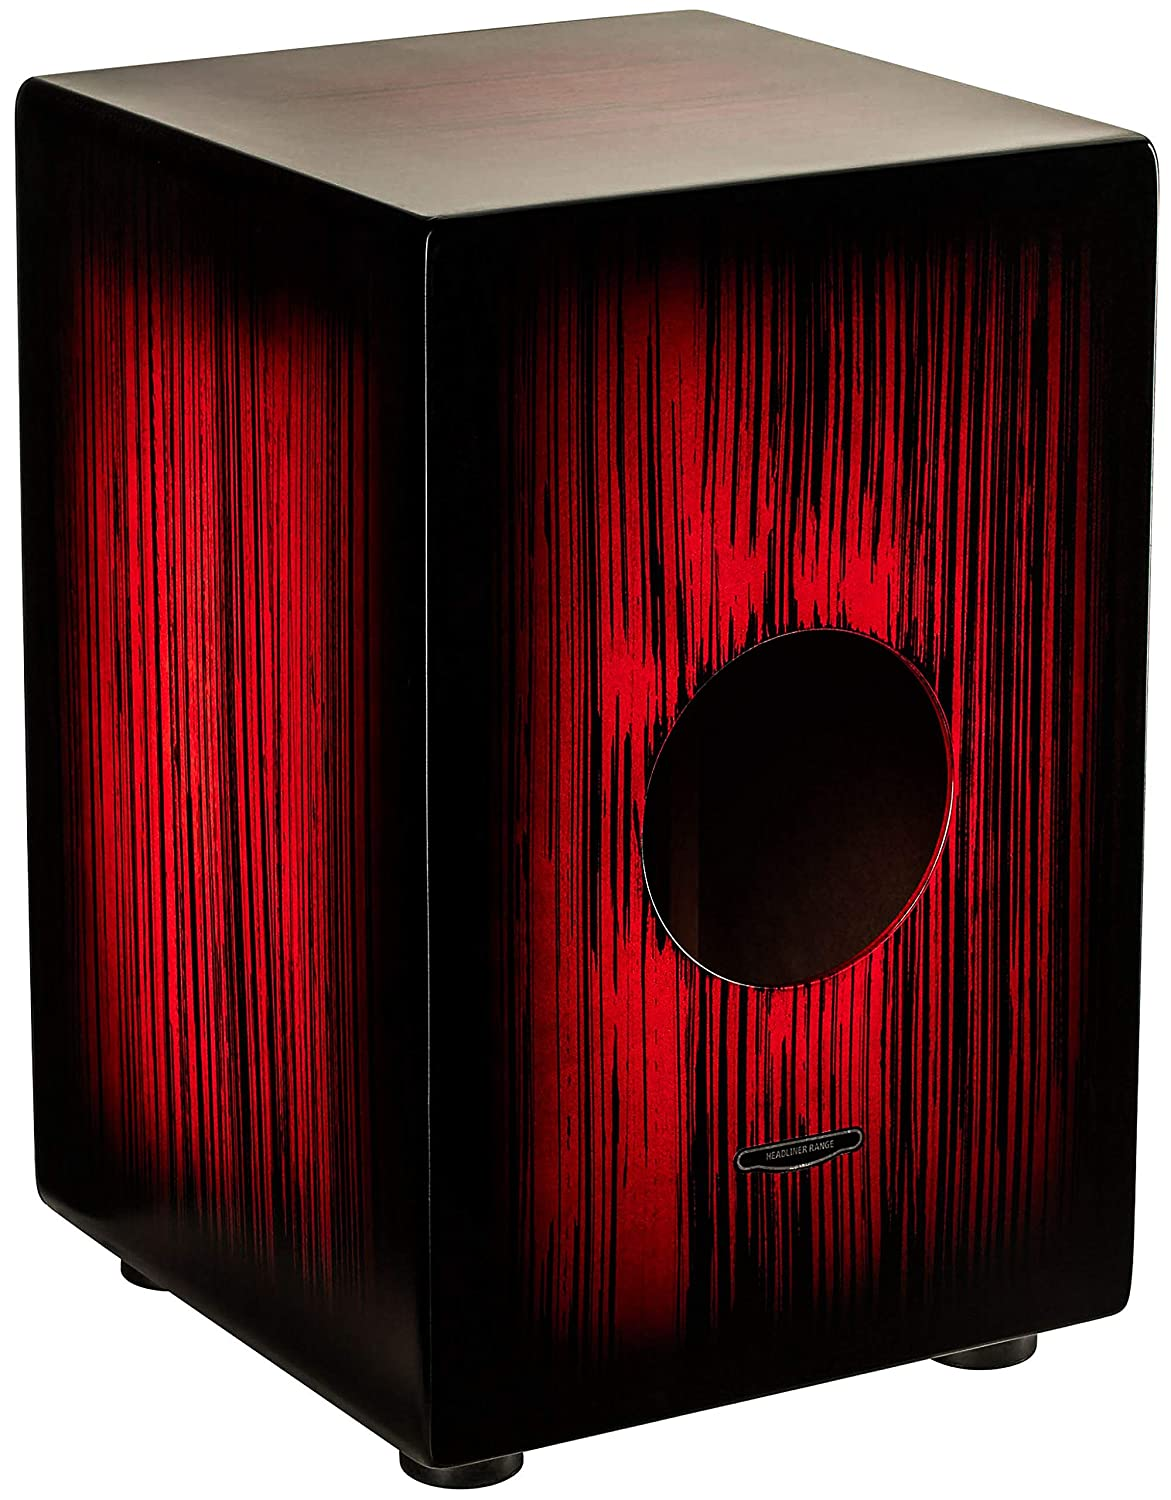 NOT MADE IN CHINA 2-YEAR WARRANTY Full Size Rojo Tiger Stripe Meinl Percussion Cajon Box Drum with Internal Metal Strings for Adjustable Snare Effect HCAJ2RTS